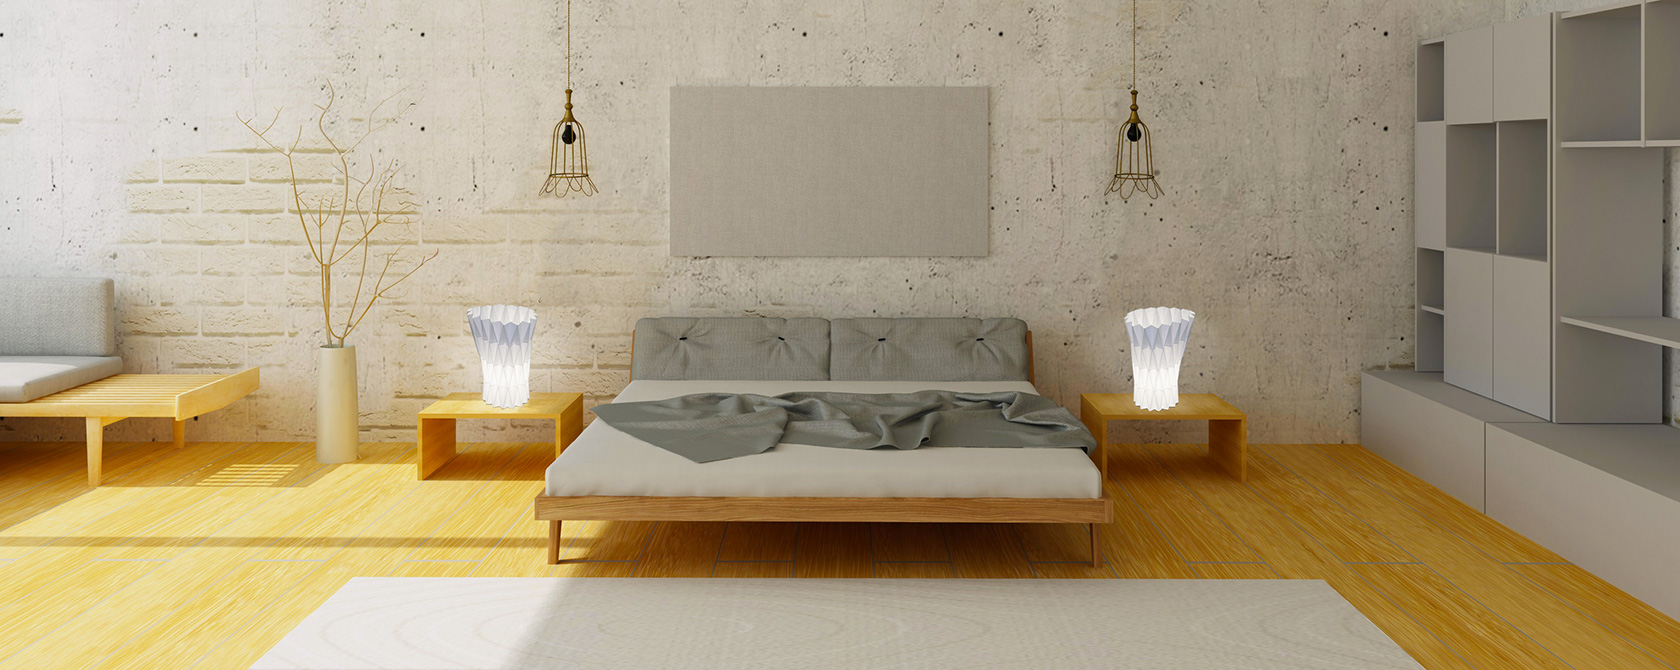 luminaires design lampes d co tetra luminaires. Black Bedroom Furniture Sets. Home Design Ideas